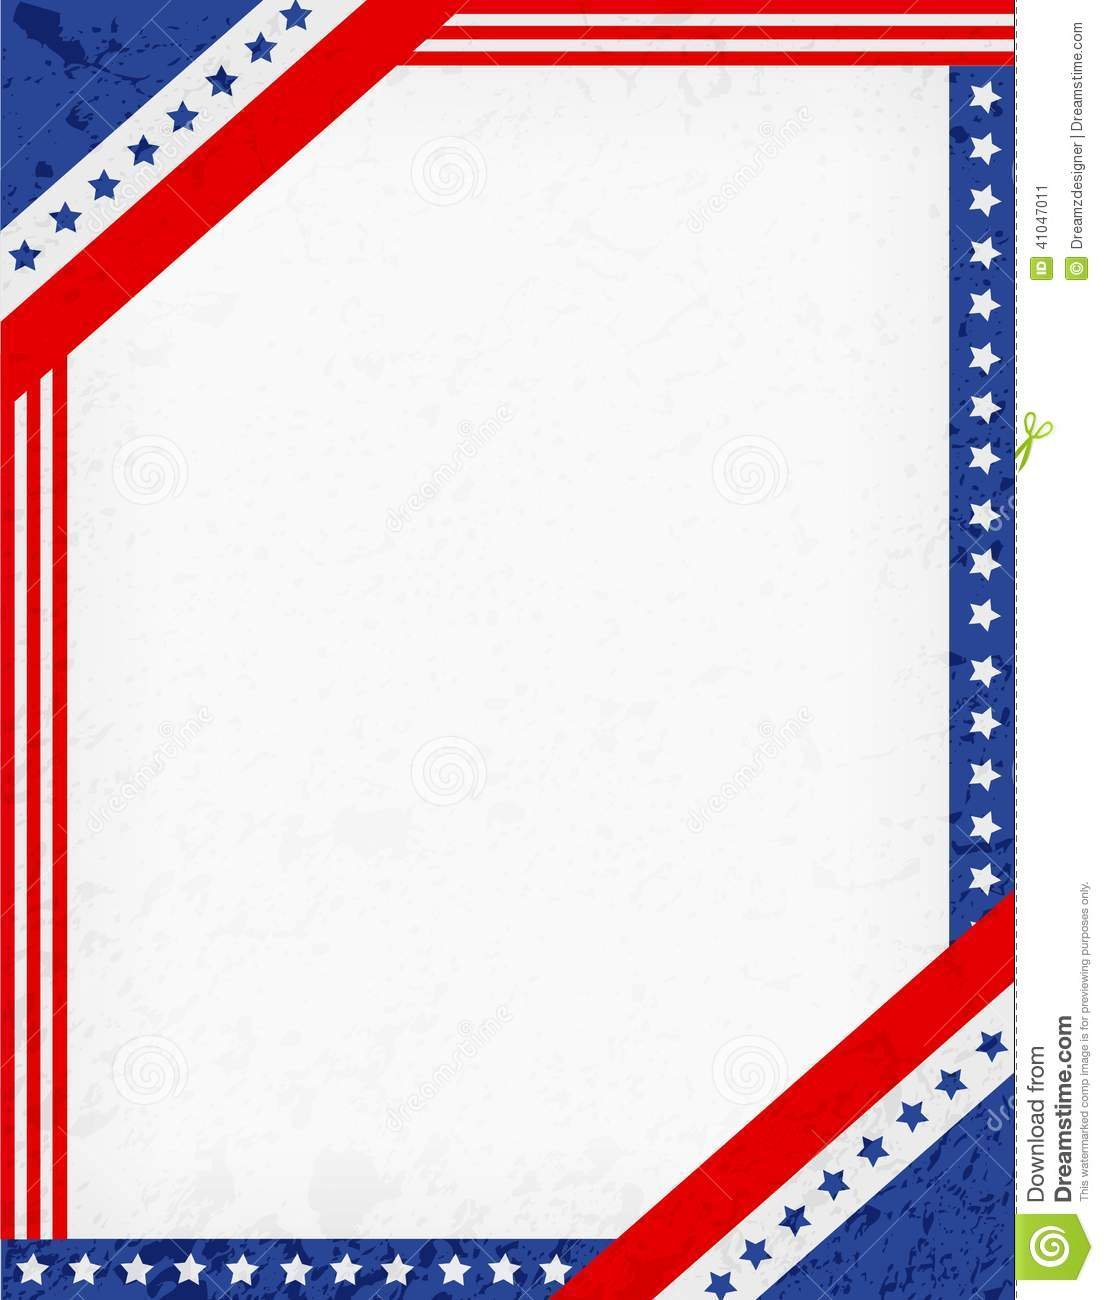 Patriotic Border Stock Vector Illustration Of Border 41047011